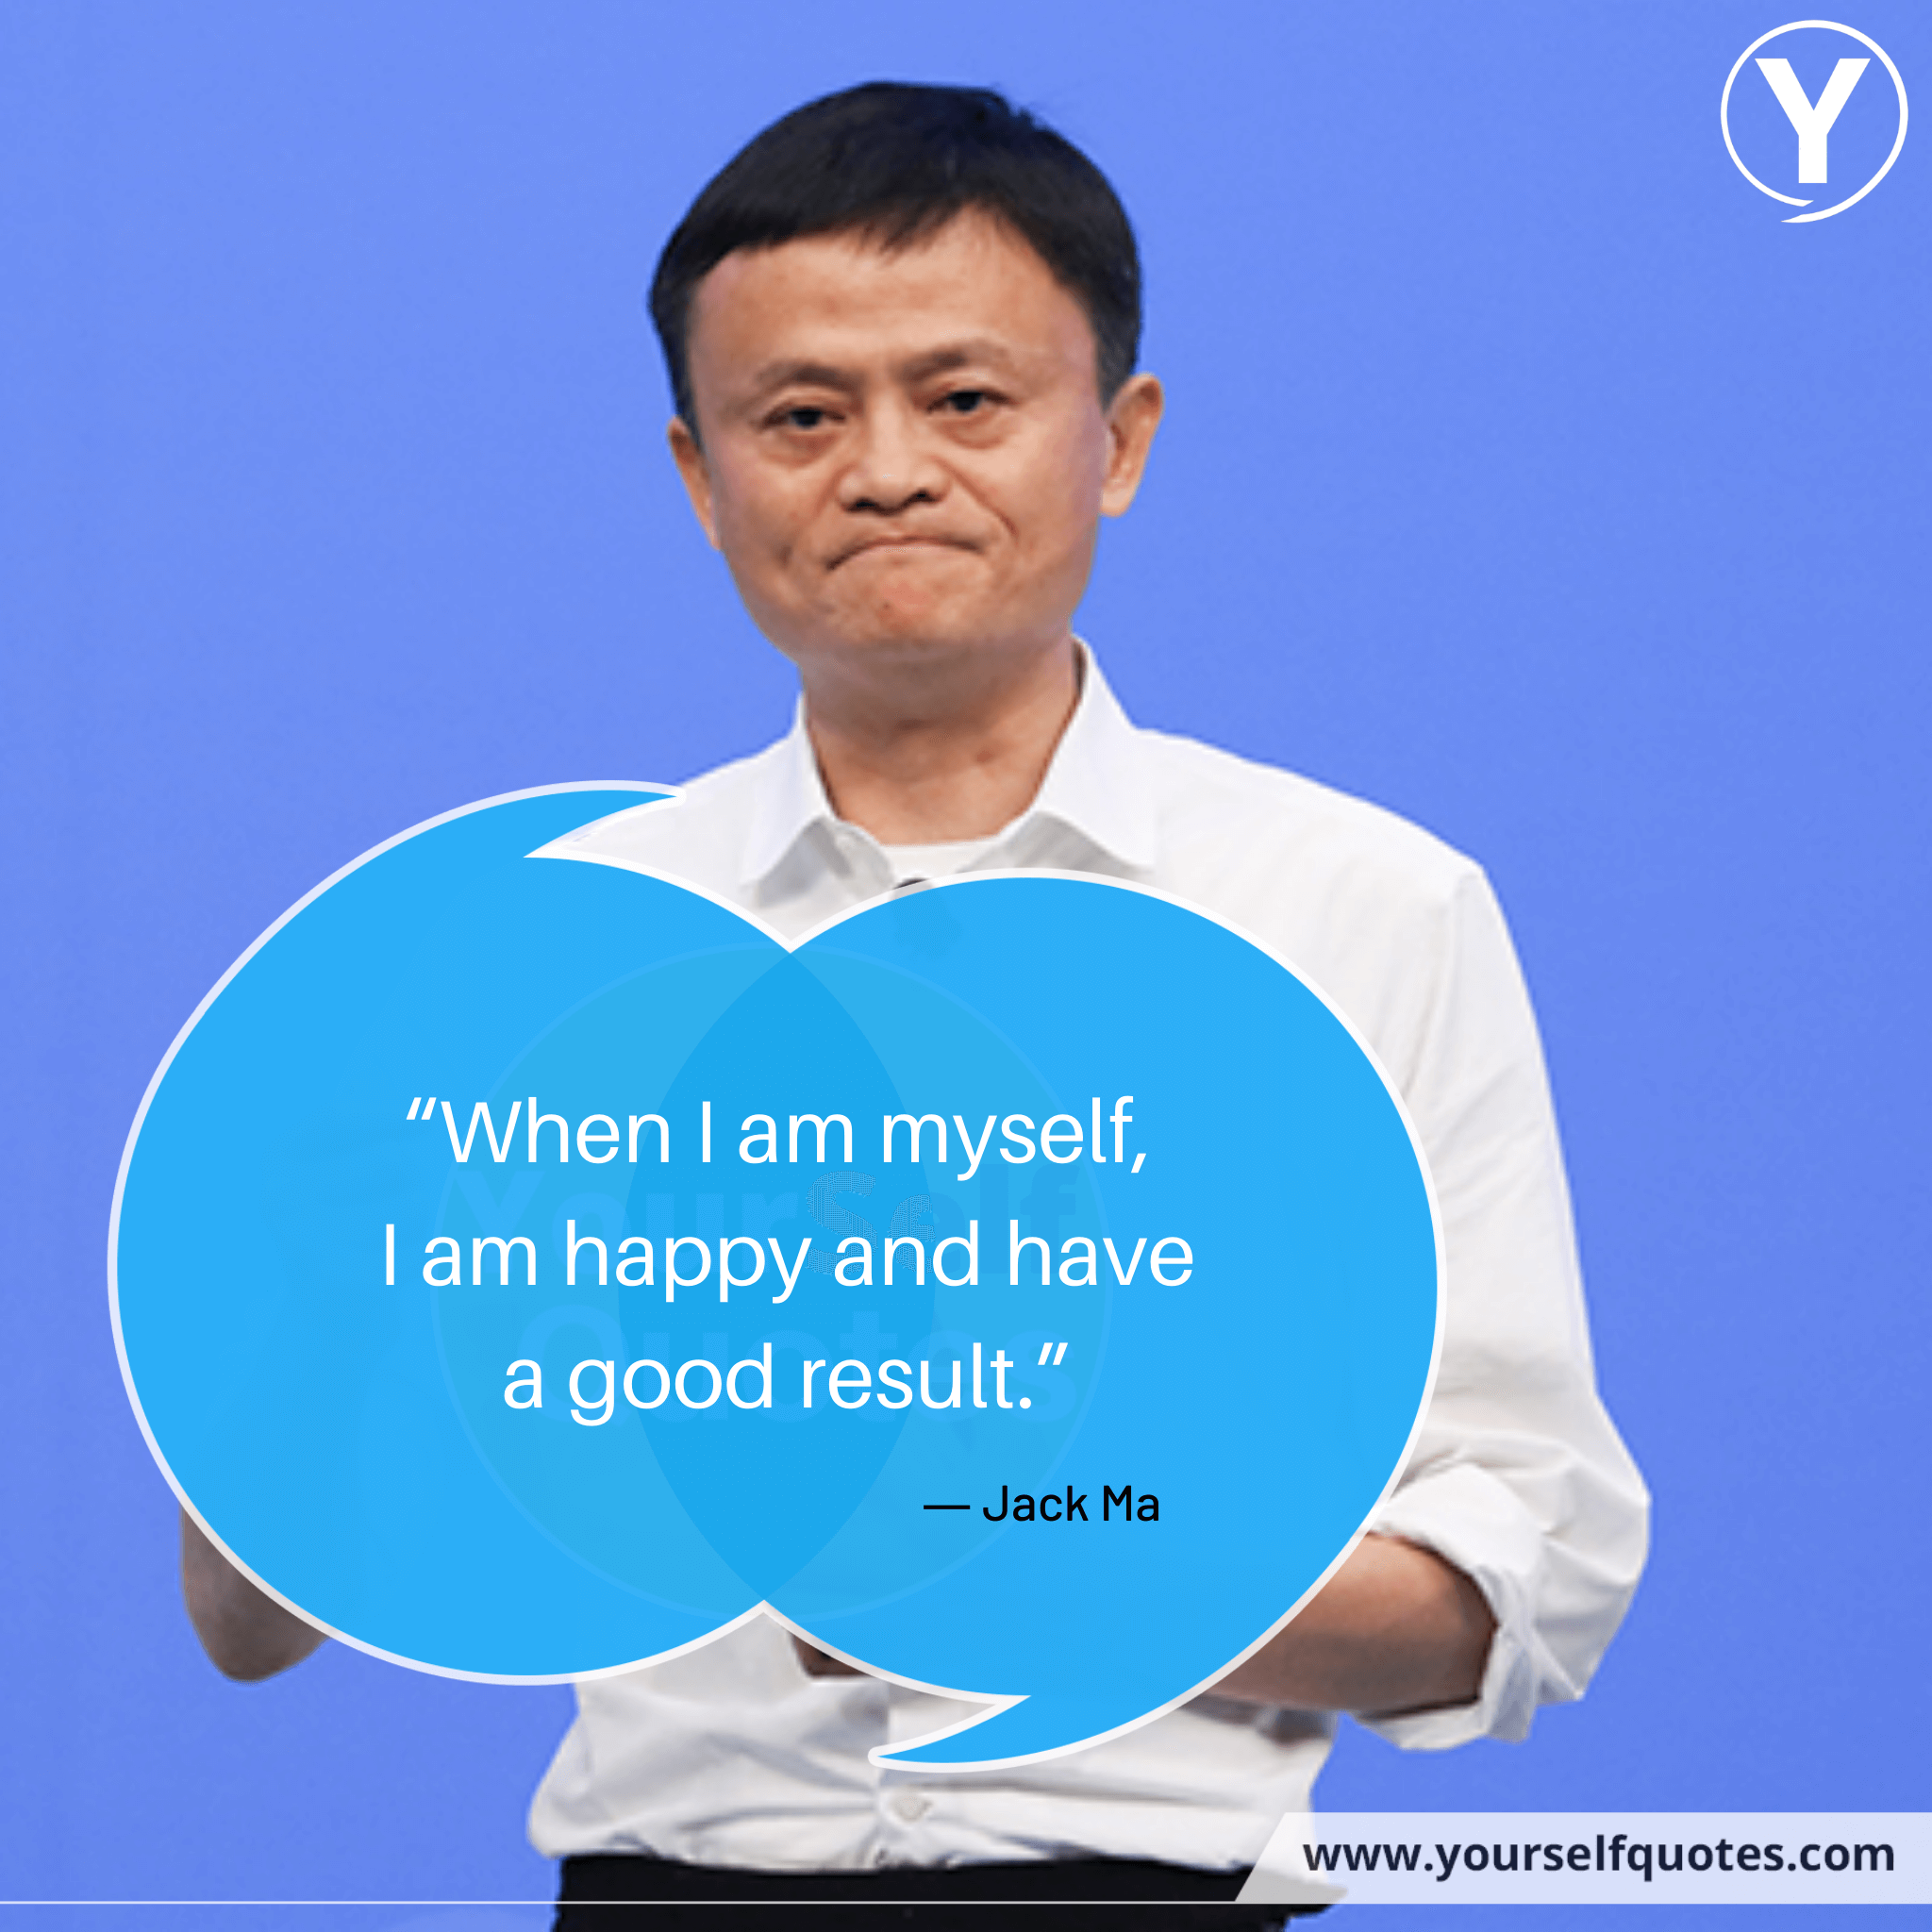 Jack Ma Most Inspiring Quotes